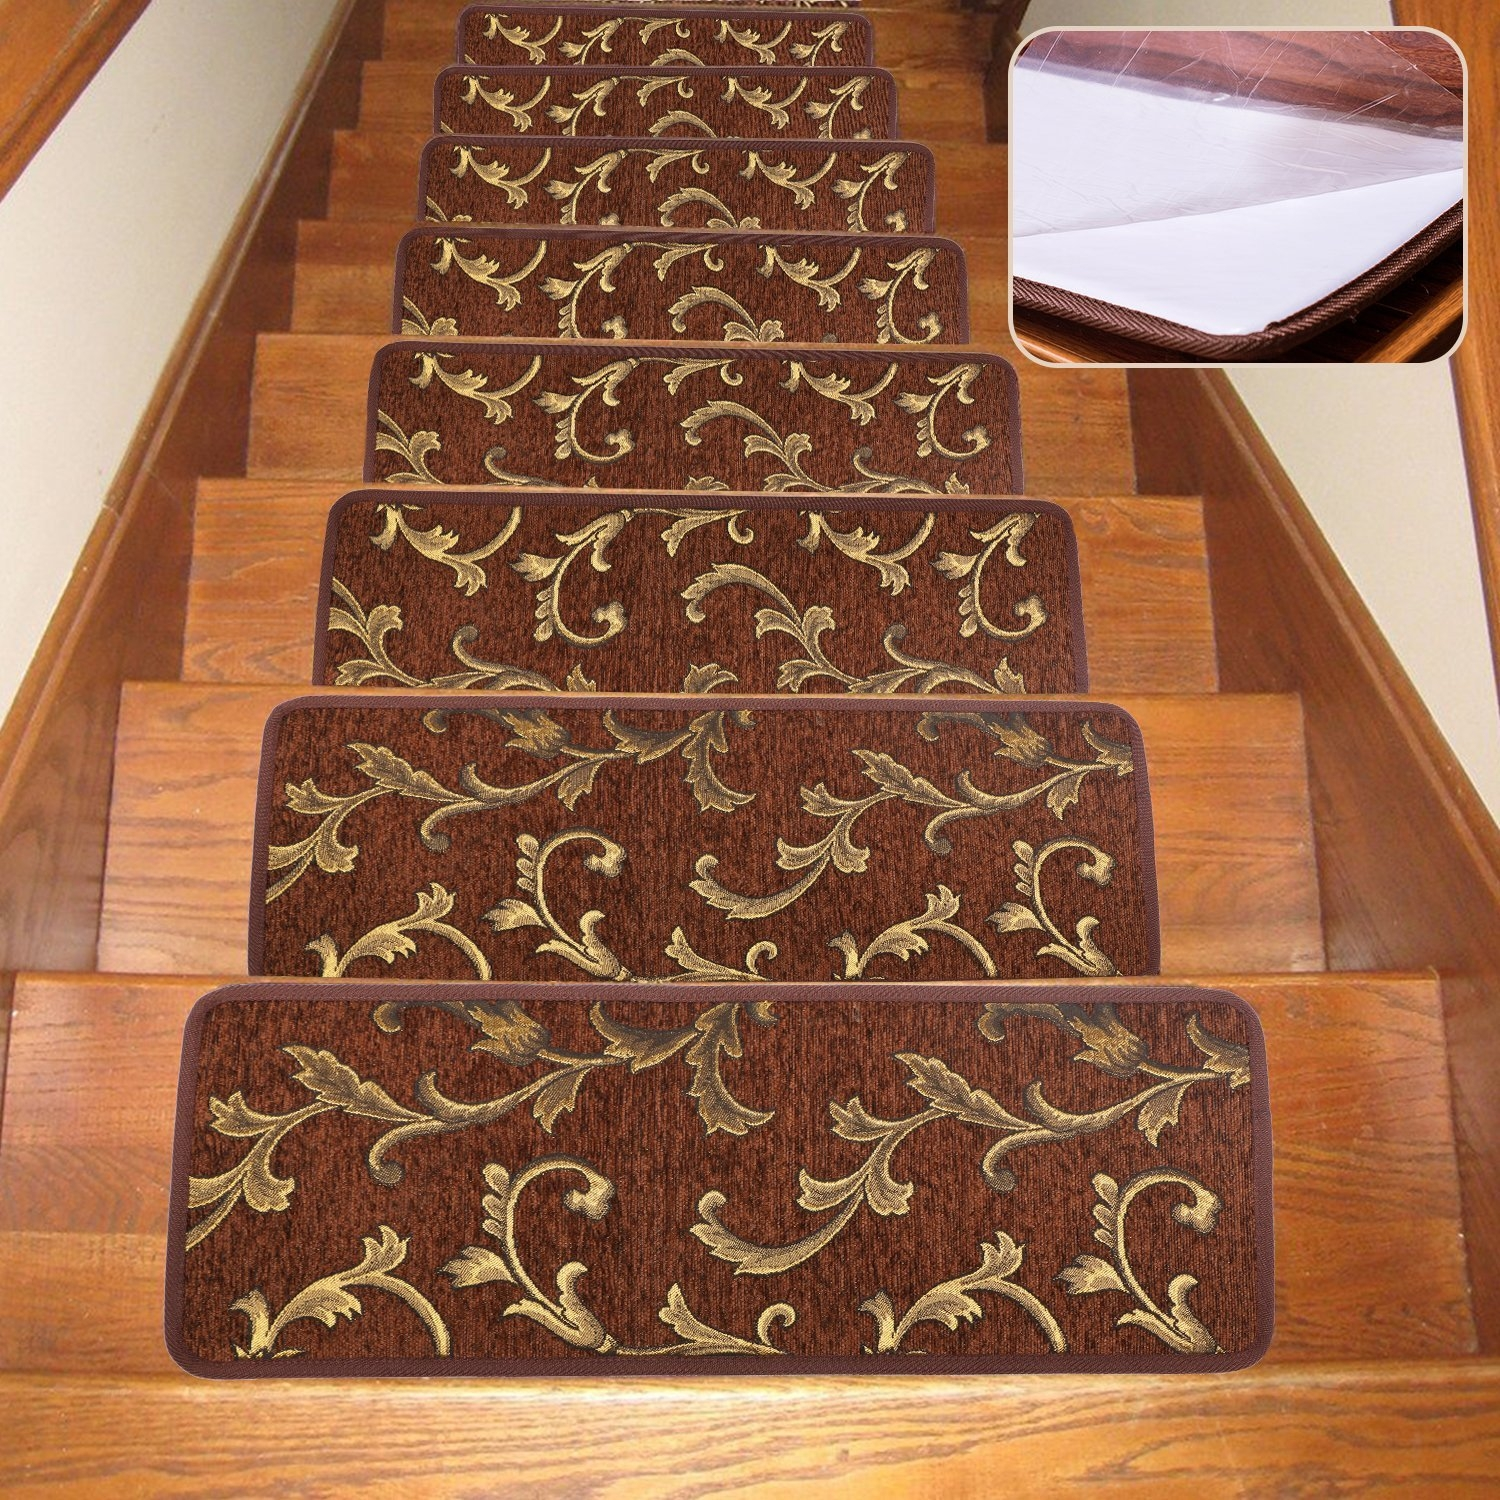 Soloom Non Slip Stair Treads Carpet Indoor Set Of 13 Blended Throughout Set Of 13 Stair Tread Rugs (#18 of 20)